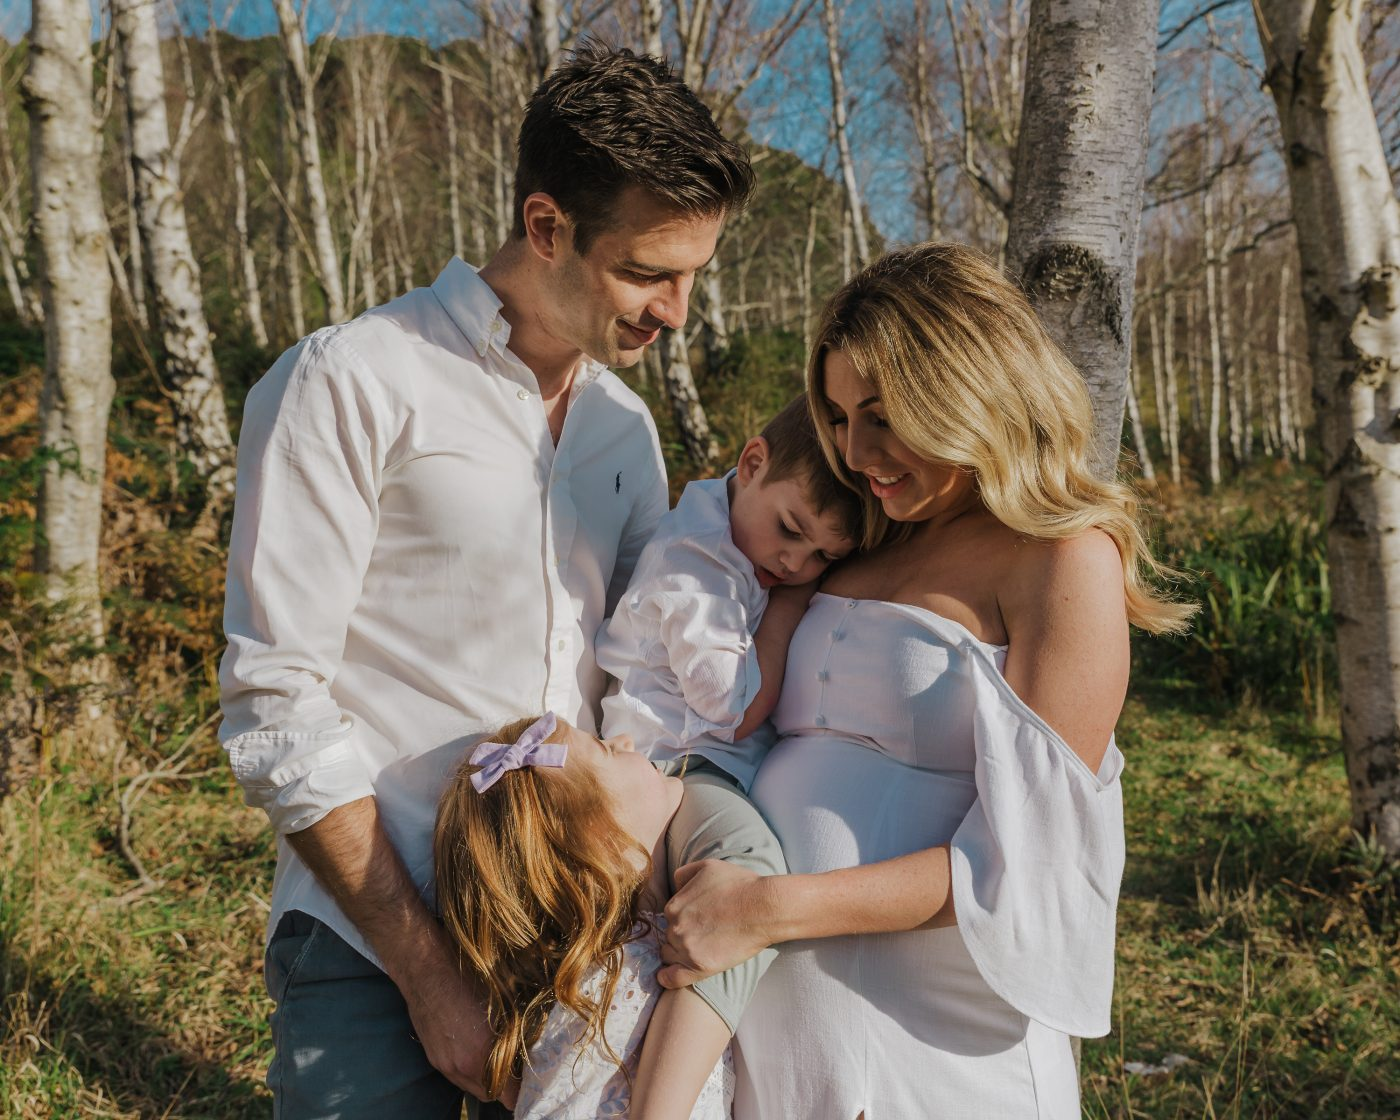 Photoshoot-Families-AlexanderFamily